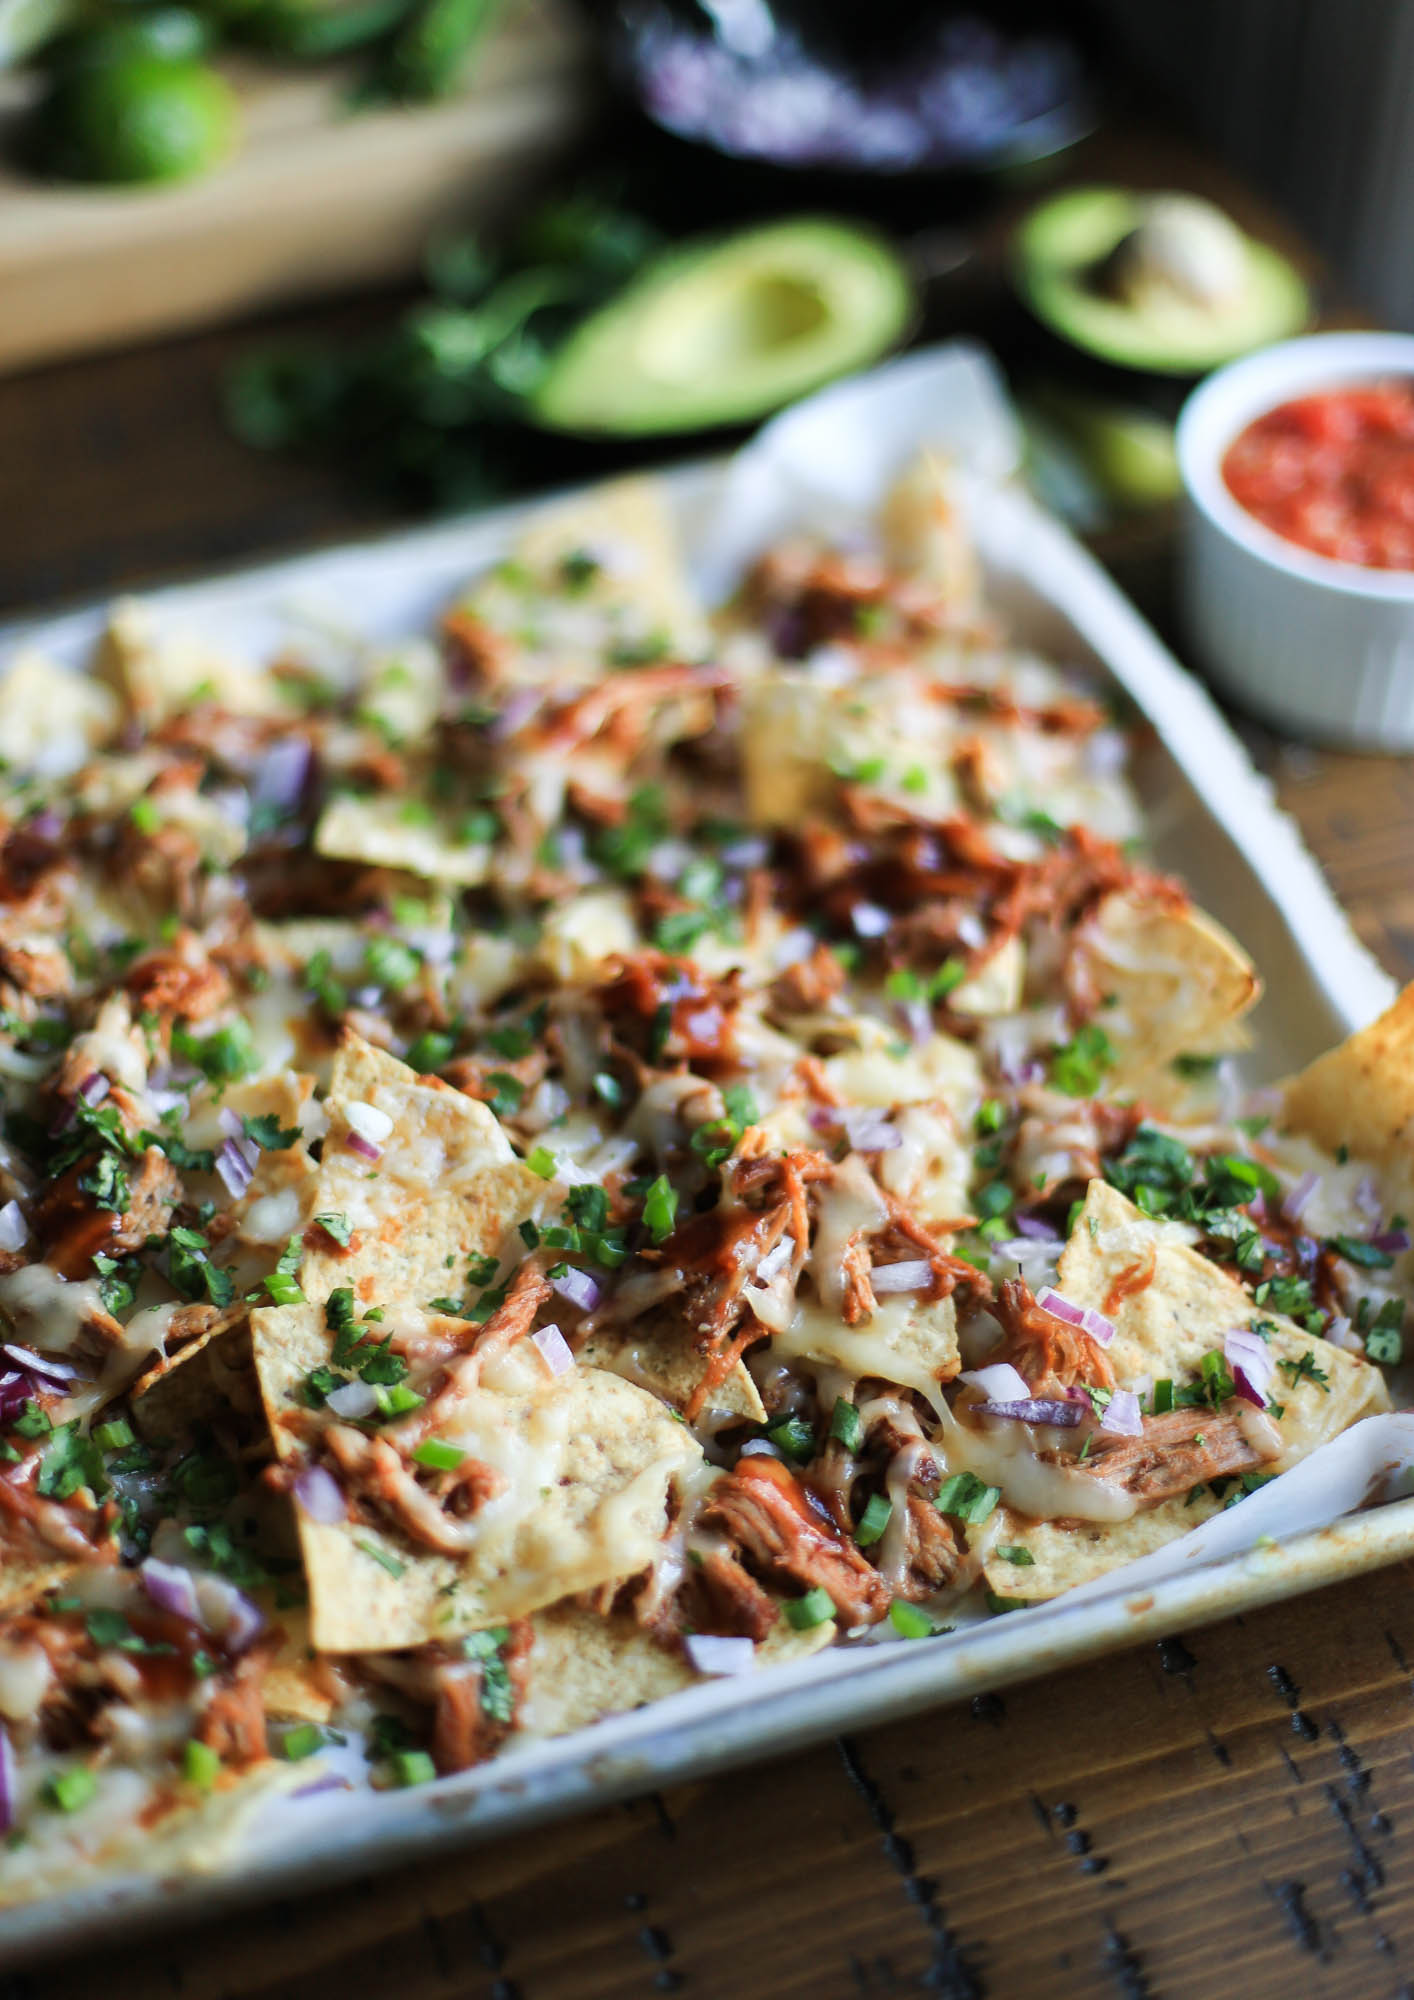 Loaded Pulled Pork Nachos by The District Table